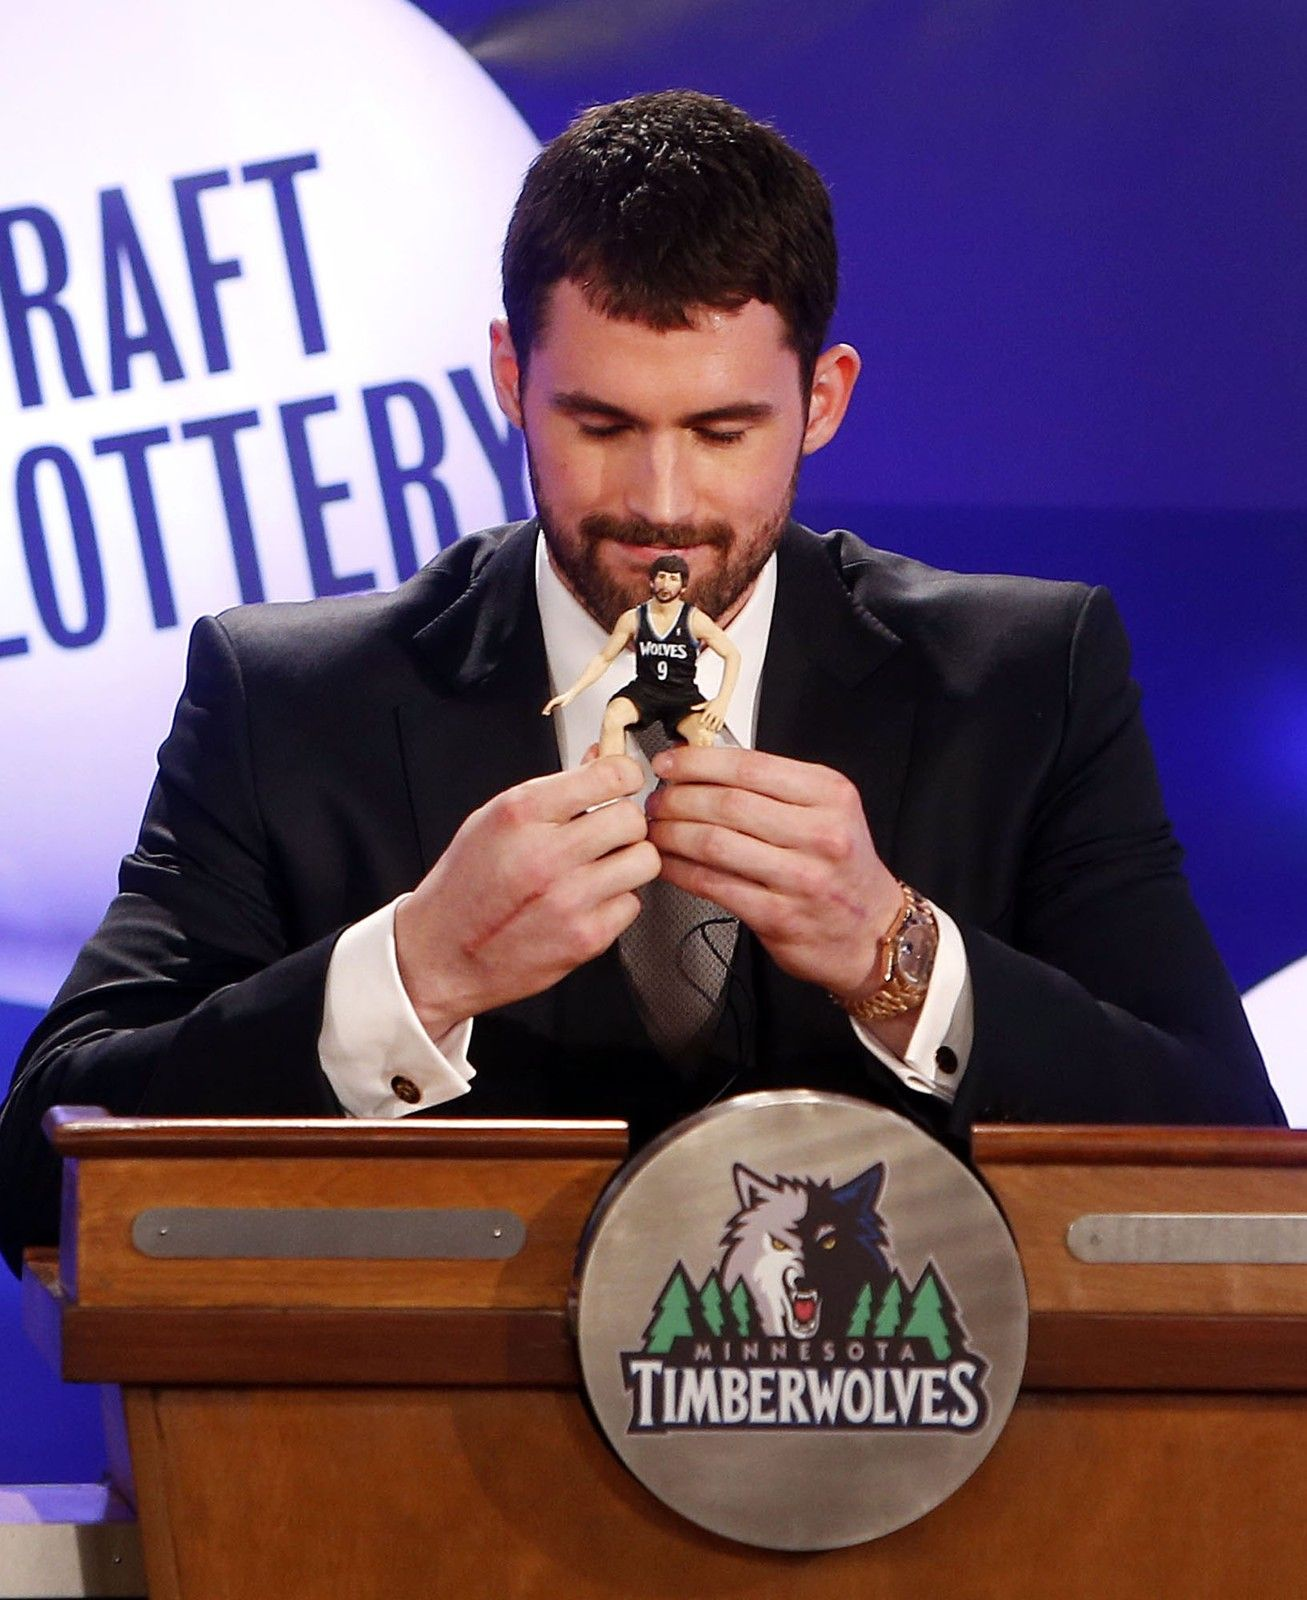 Kevin Love holds a Ricky Rubio bobble head doll he brought for good luck during the NBA basketball draft lottery, Tuesday, May 21, 2013 in New York.